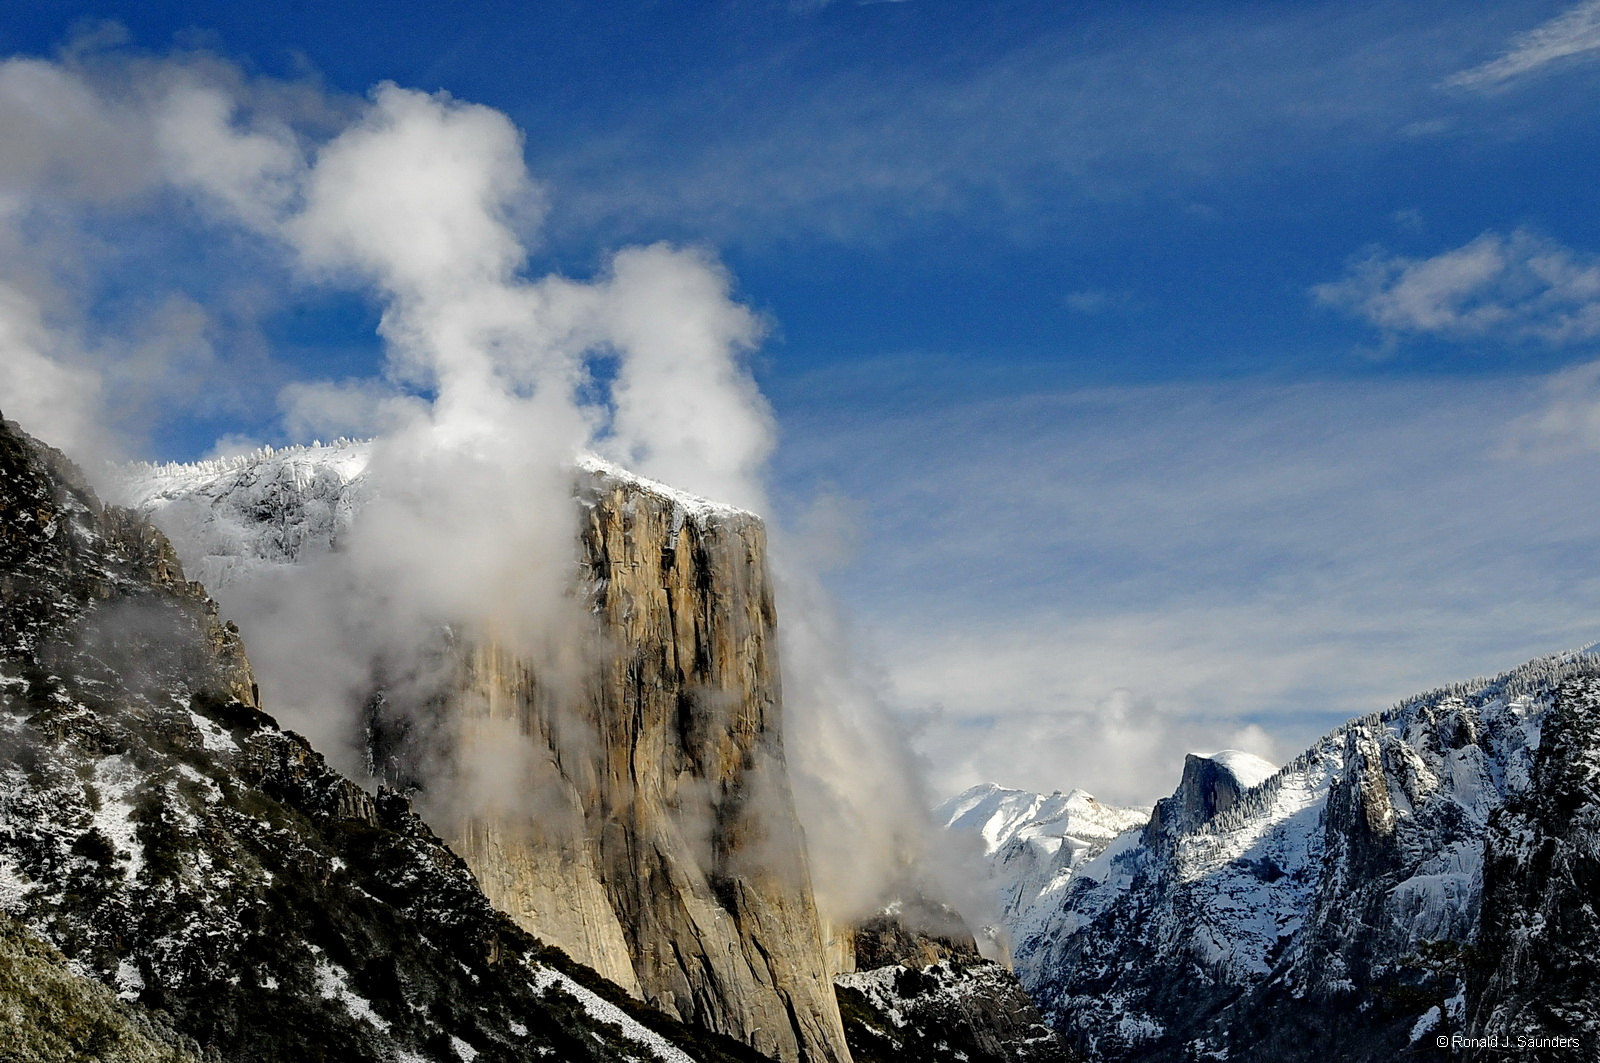 yosemite, el capitan, clouds, valley, color, tunnel, view, photo